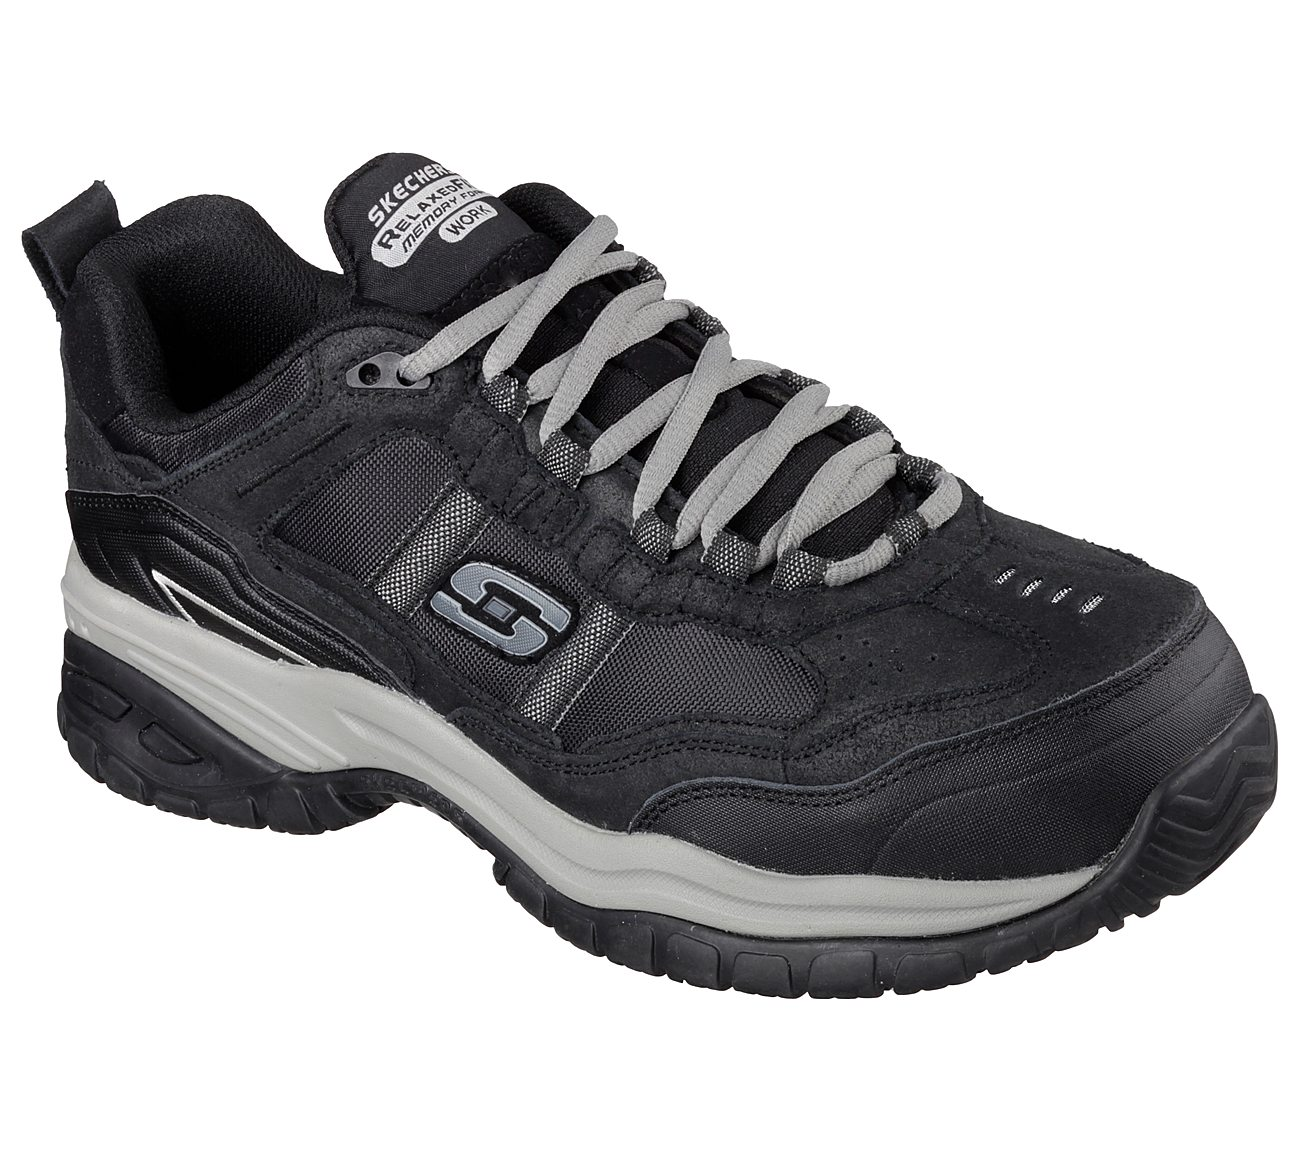 sketchers shoes hover to zoom FWPACGL